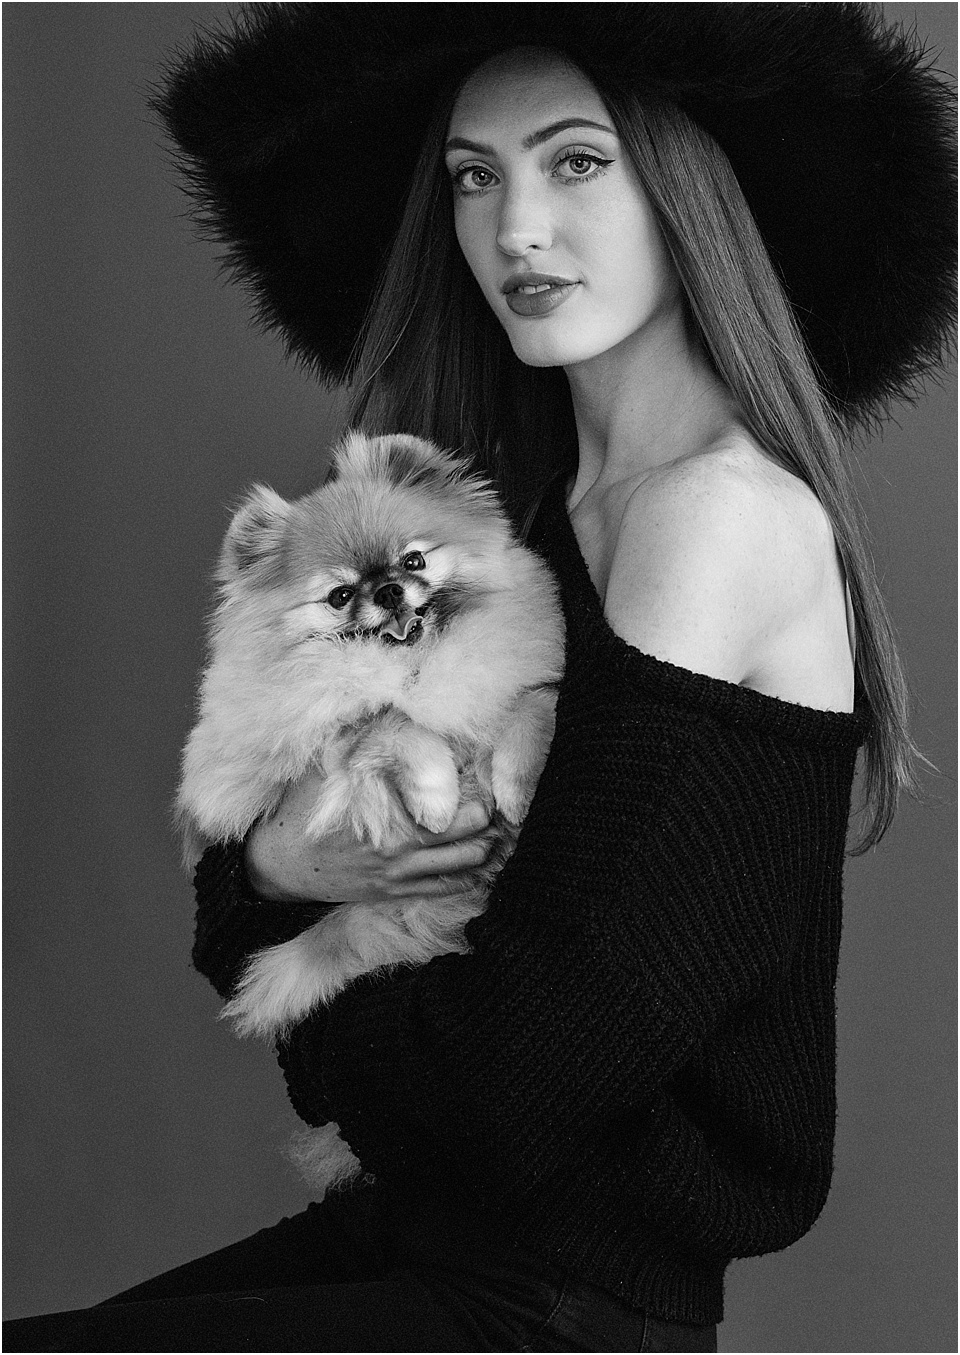 Shout out to our stunning model Alyssa and her fur baby for playing with us in the studio, inspired by the amazing  Gigi Hadid .